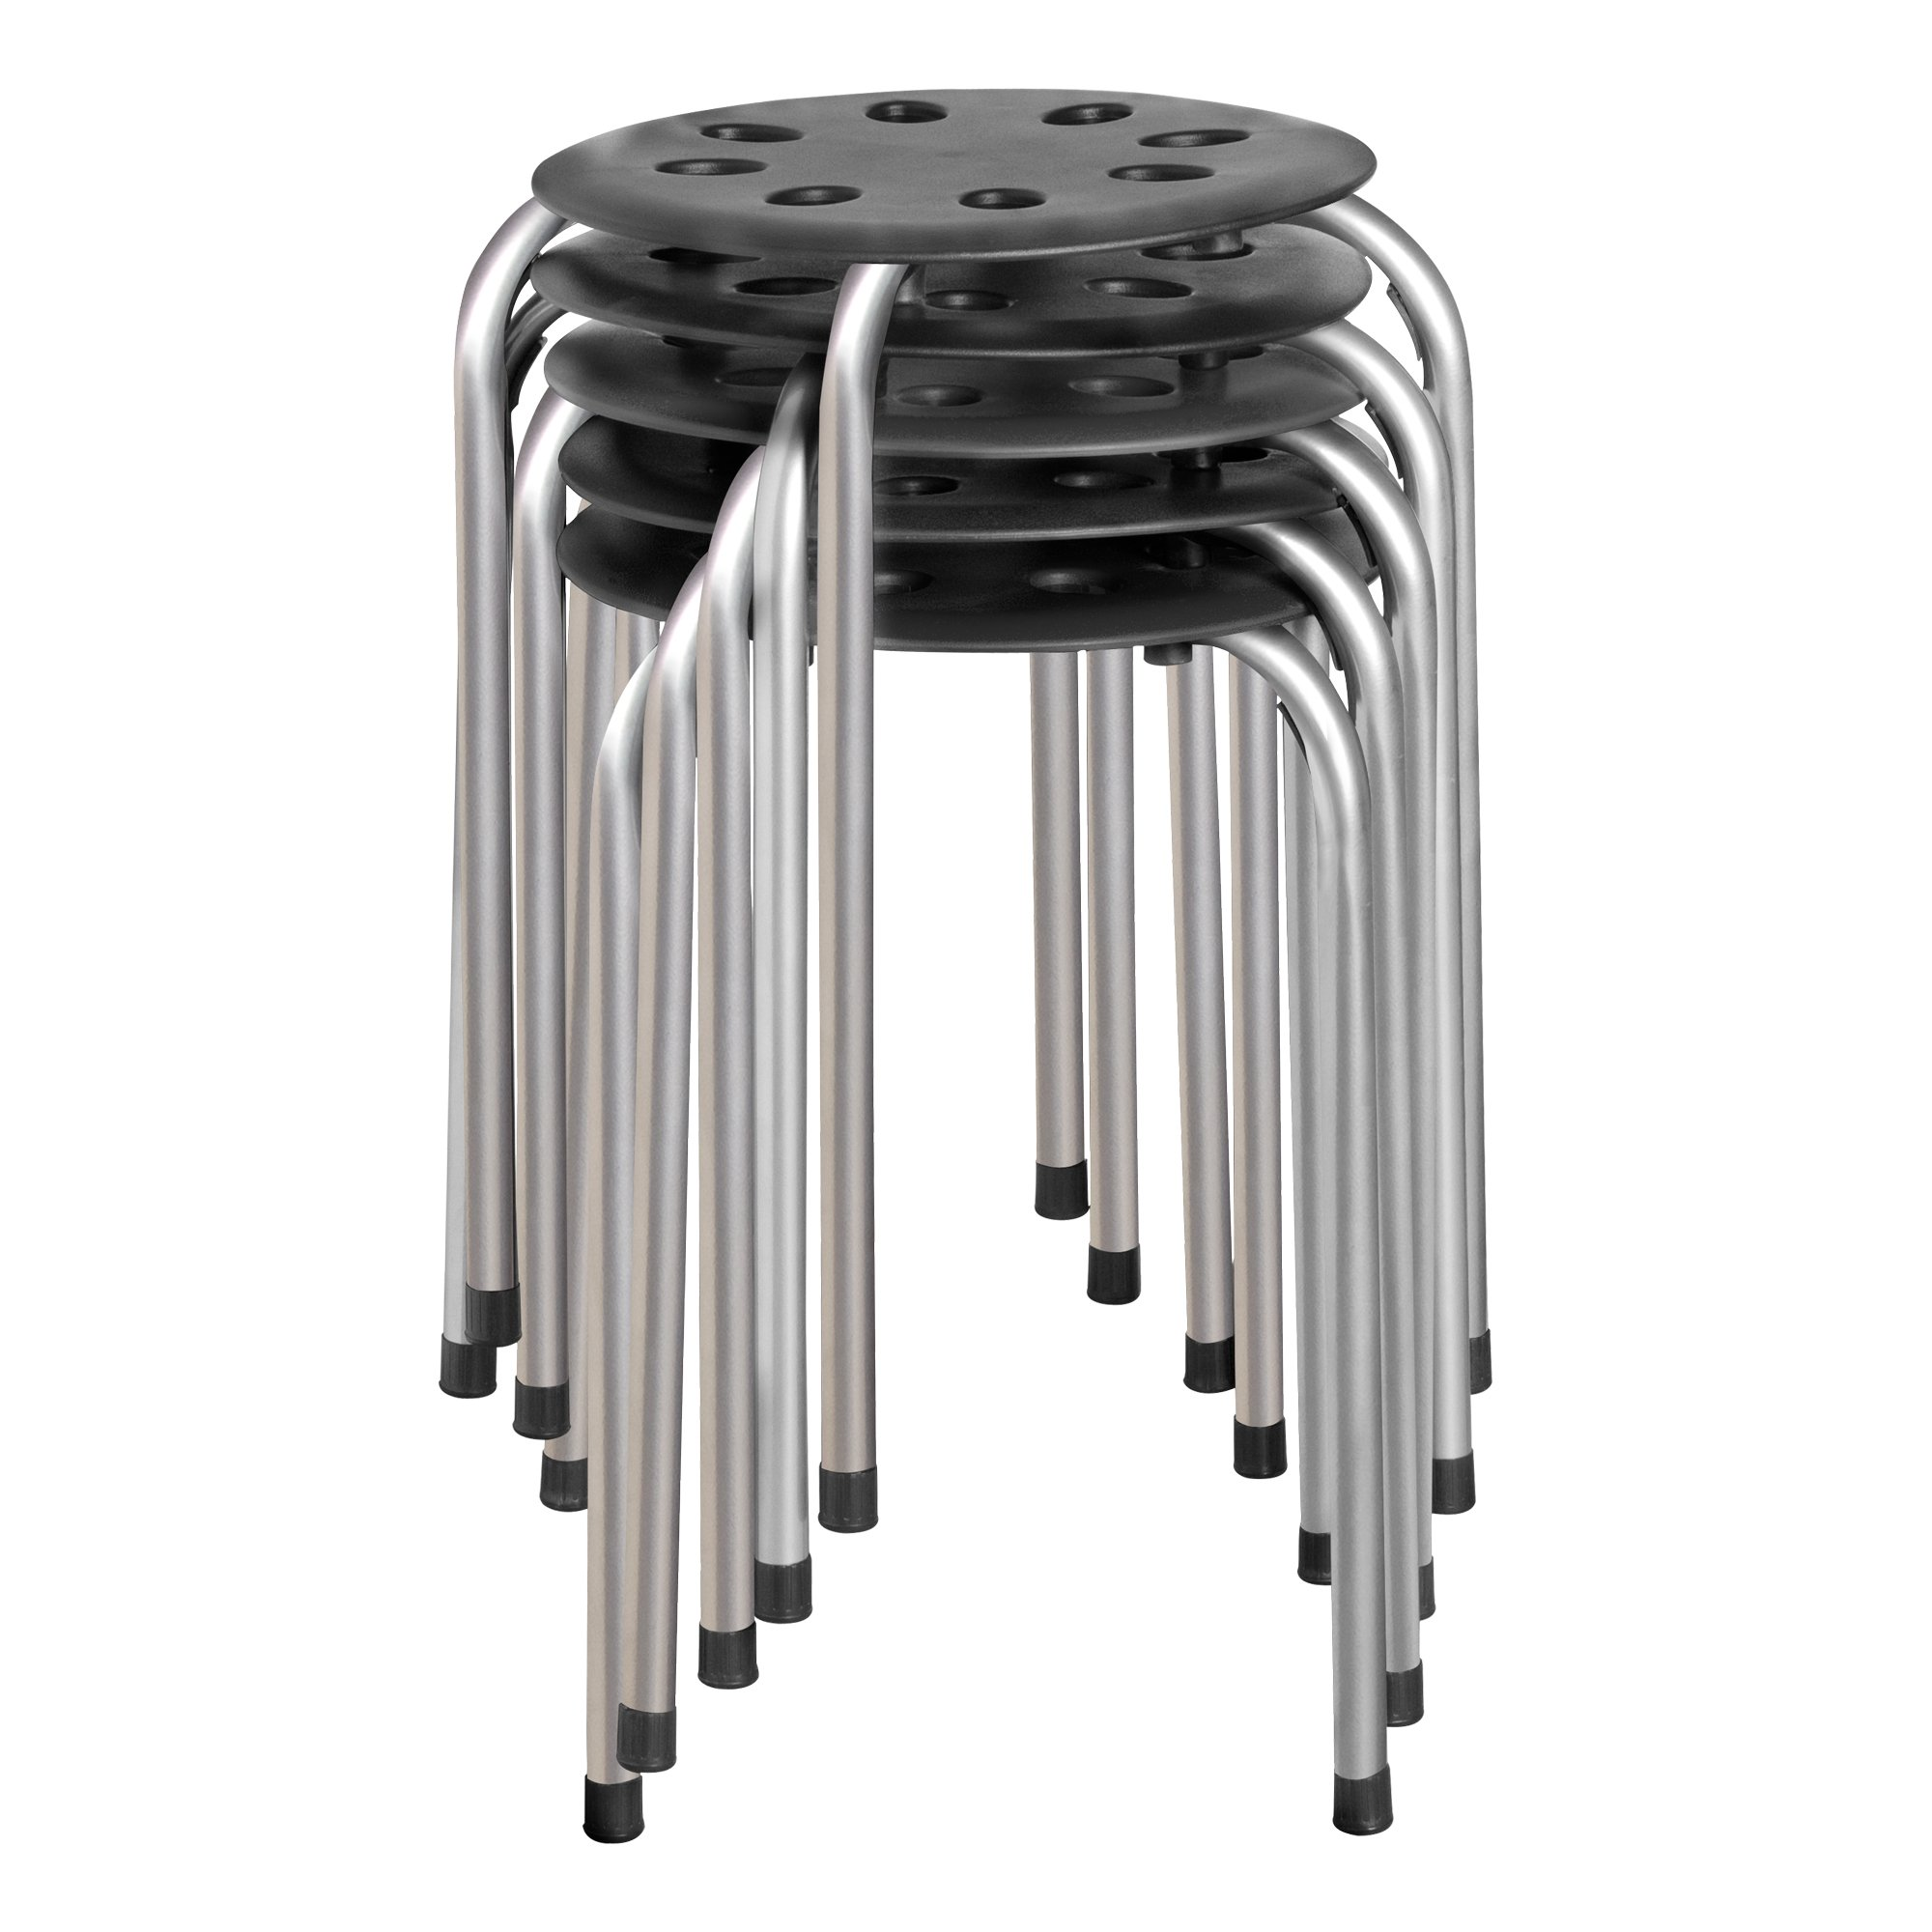 Norwood Commercial Furniture Nor Stoolbs So Plastic Stack